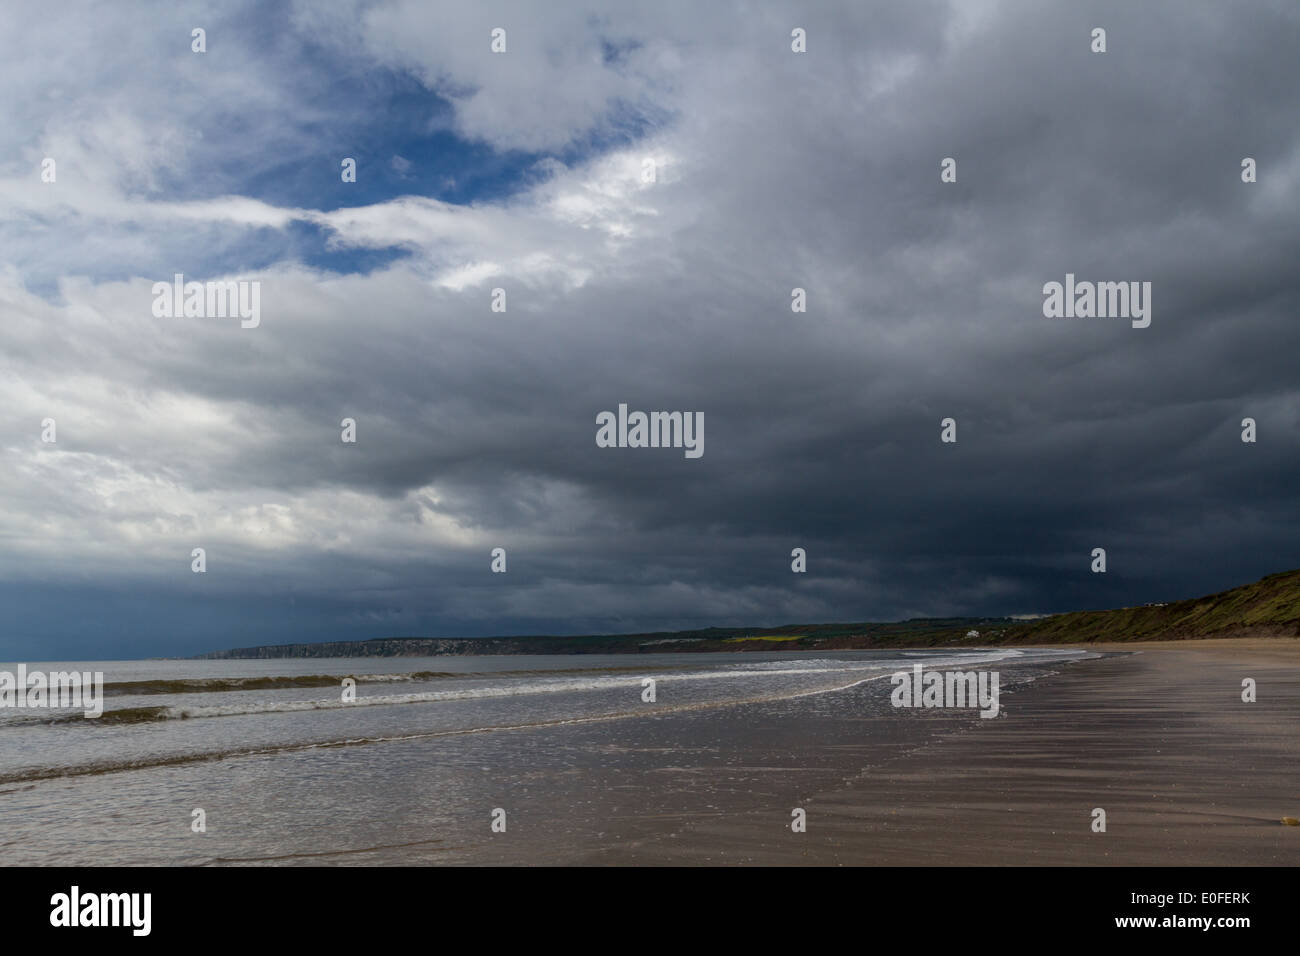 Filey on the Yorkshire coast as a thunder storm moves in, UK - Stock Image